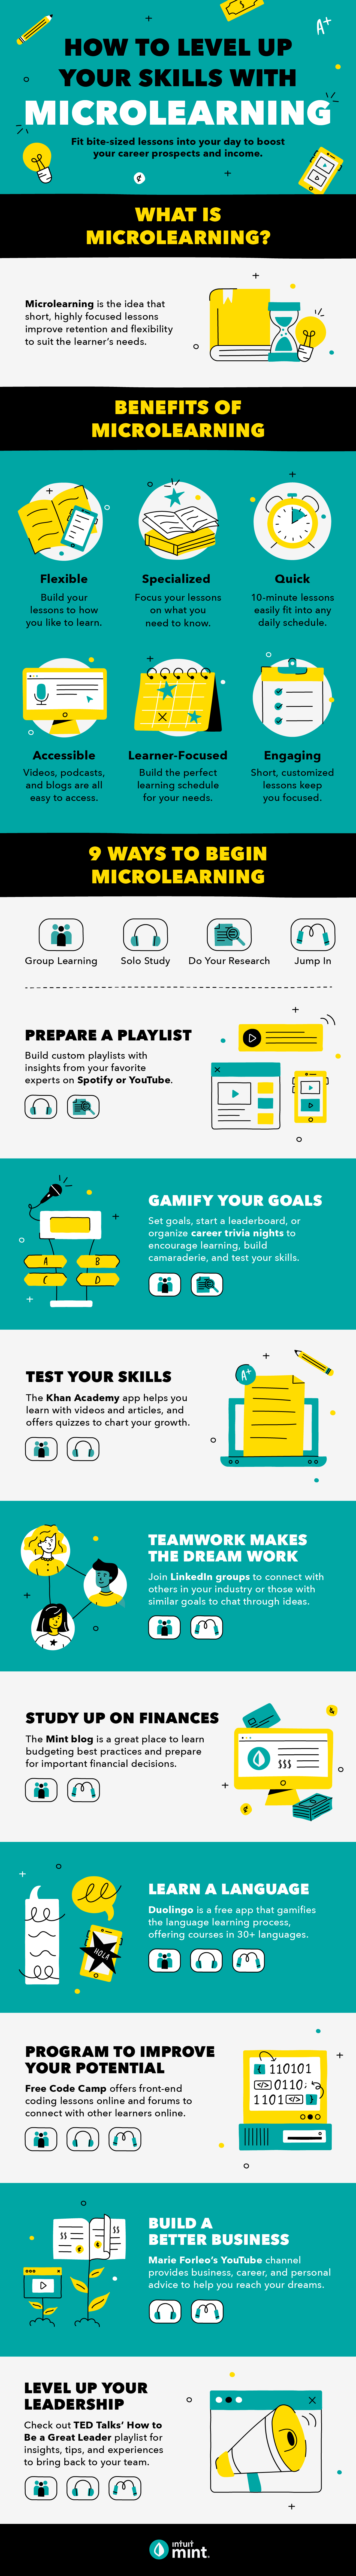 Micro learning techniques and benefits infographic